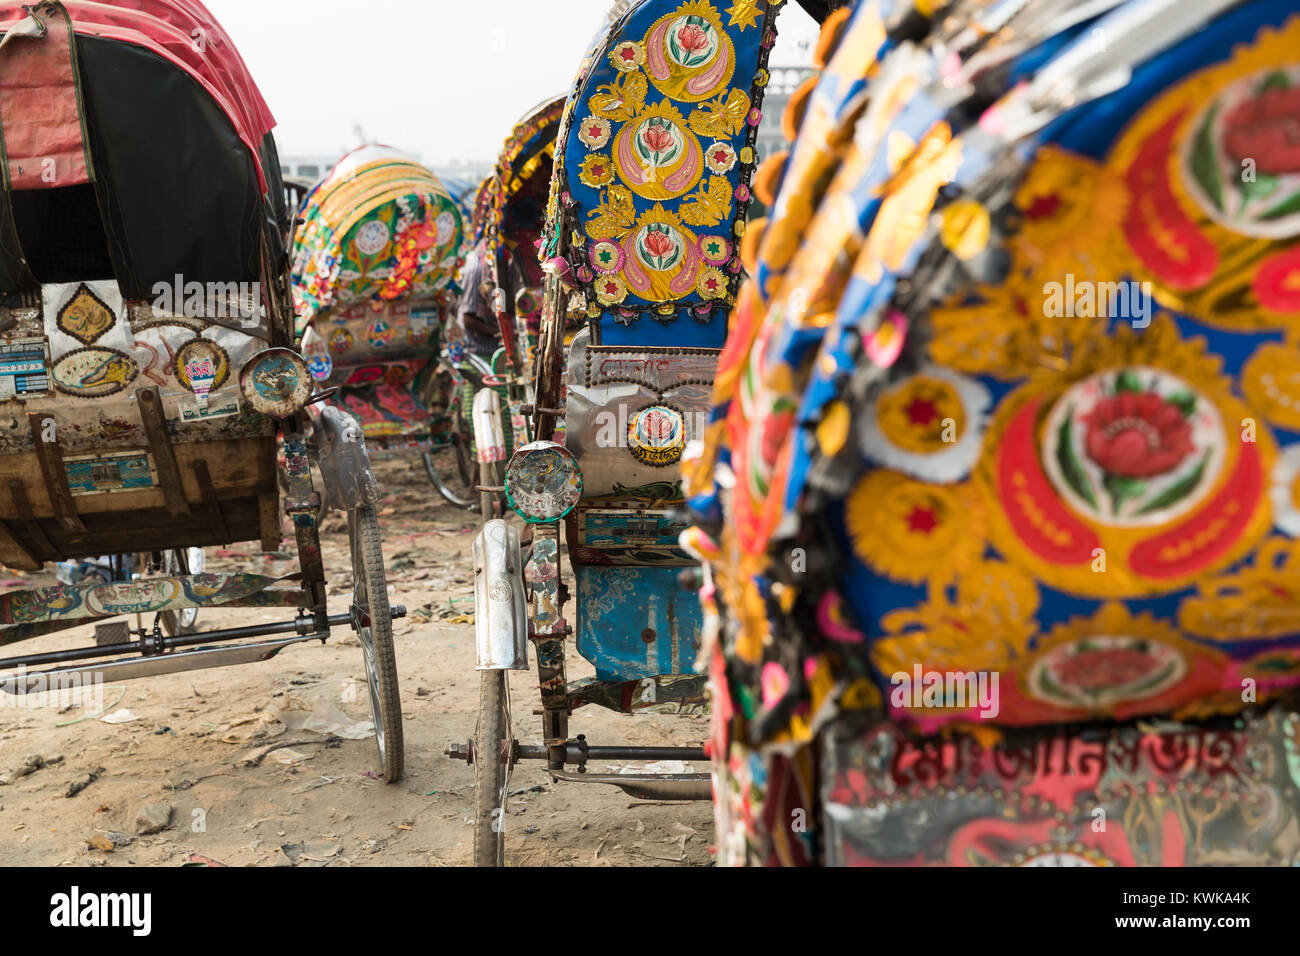 A ine of rickshaws parked on a roadside at Dhaka Bangladesh - Stock Image